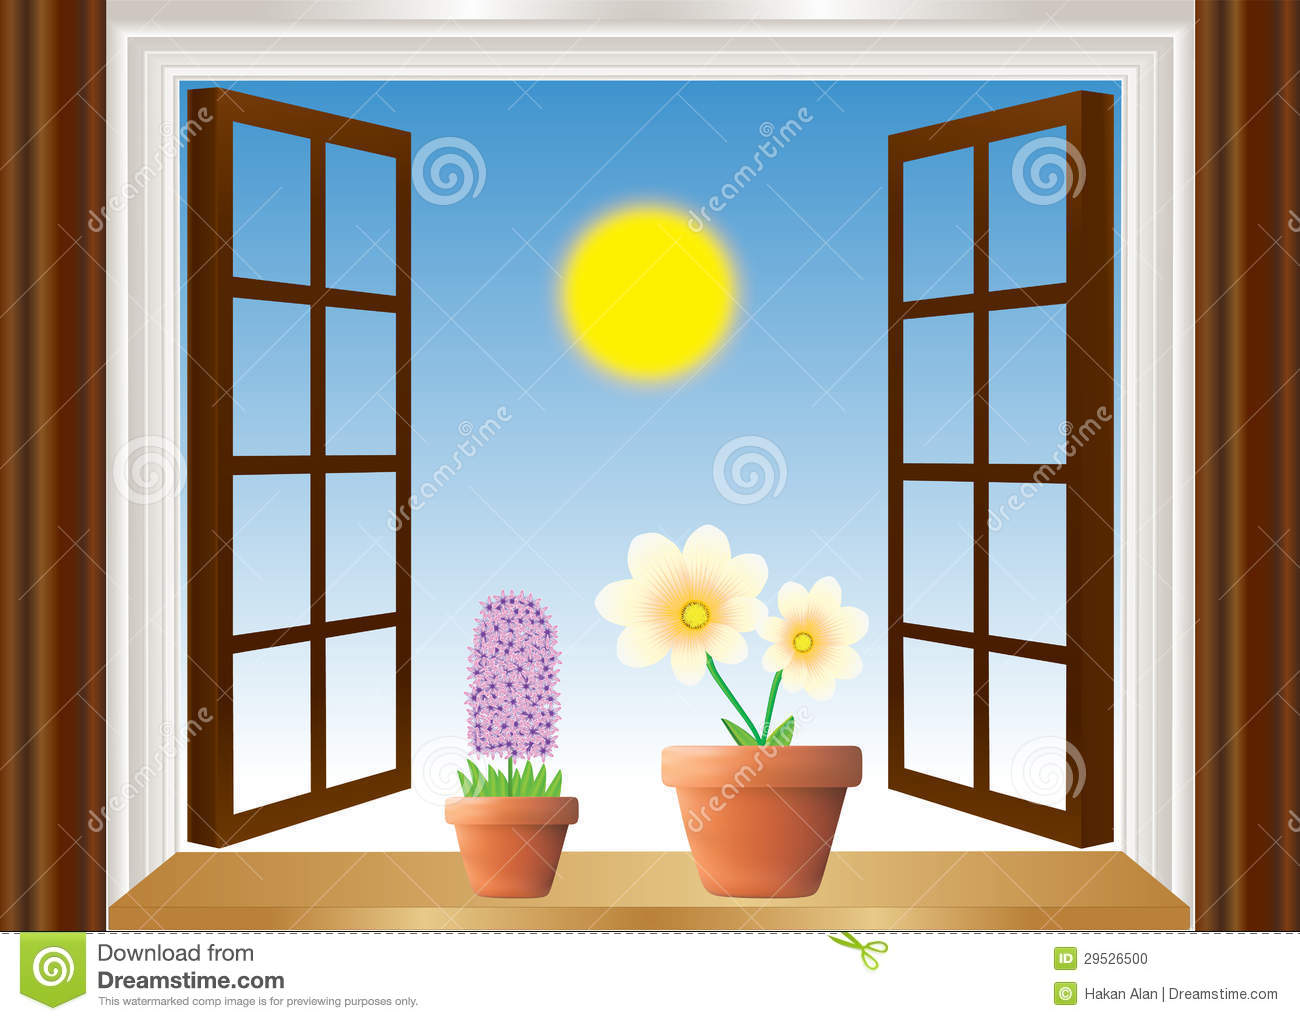 offenes fenster mit blumen vektor abbildung illustration. Black Bedroom Furniture Sets. Home Design Ideas